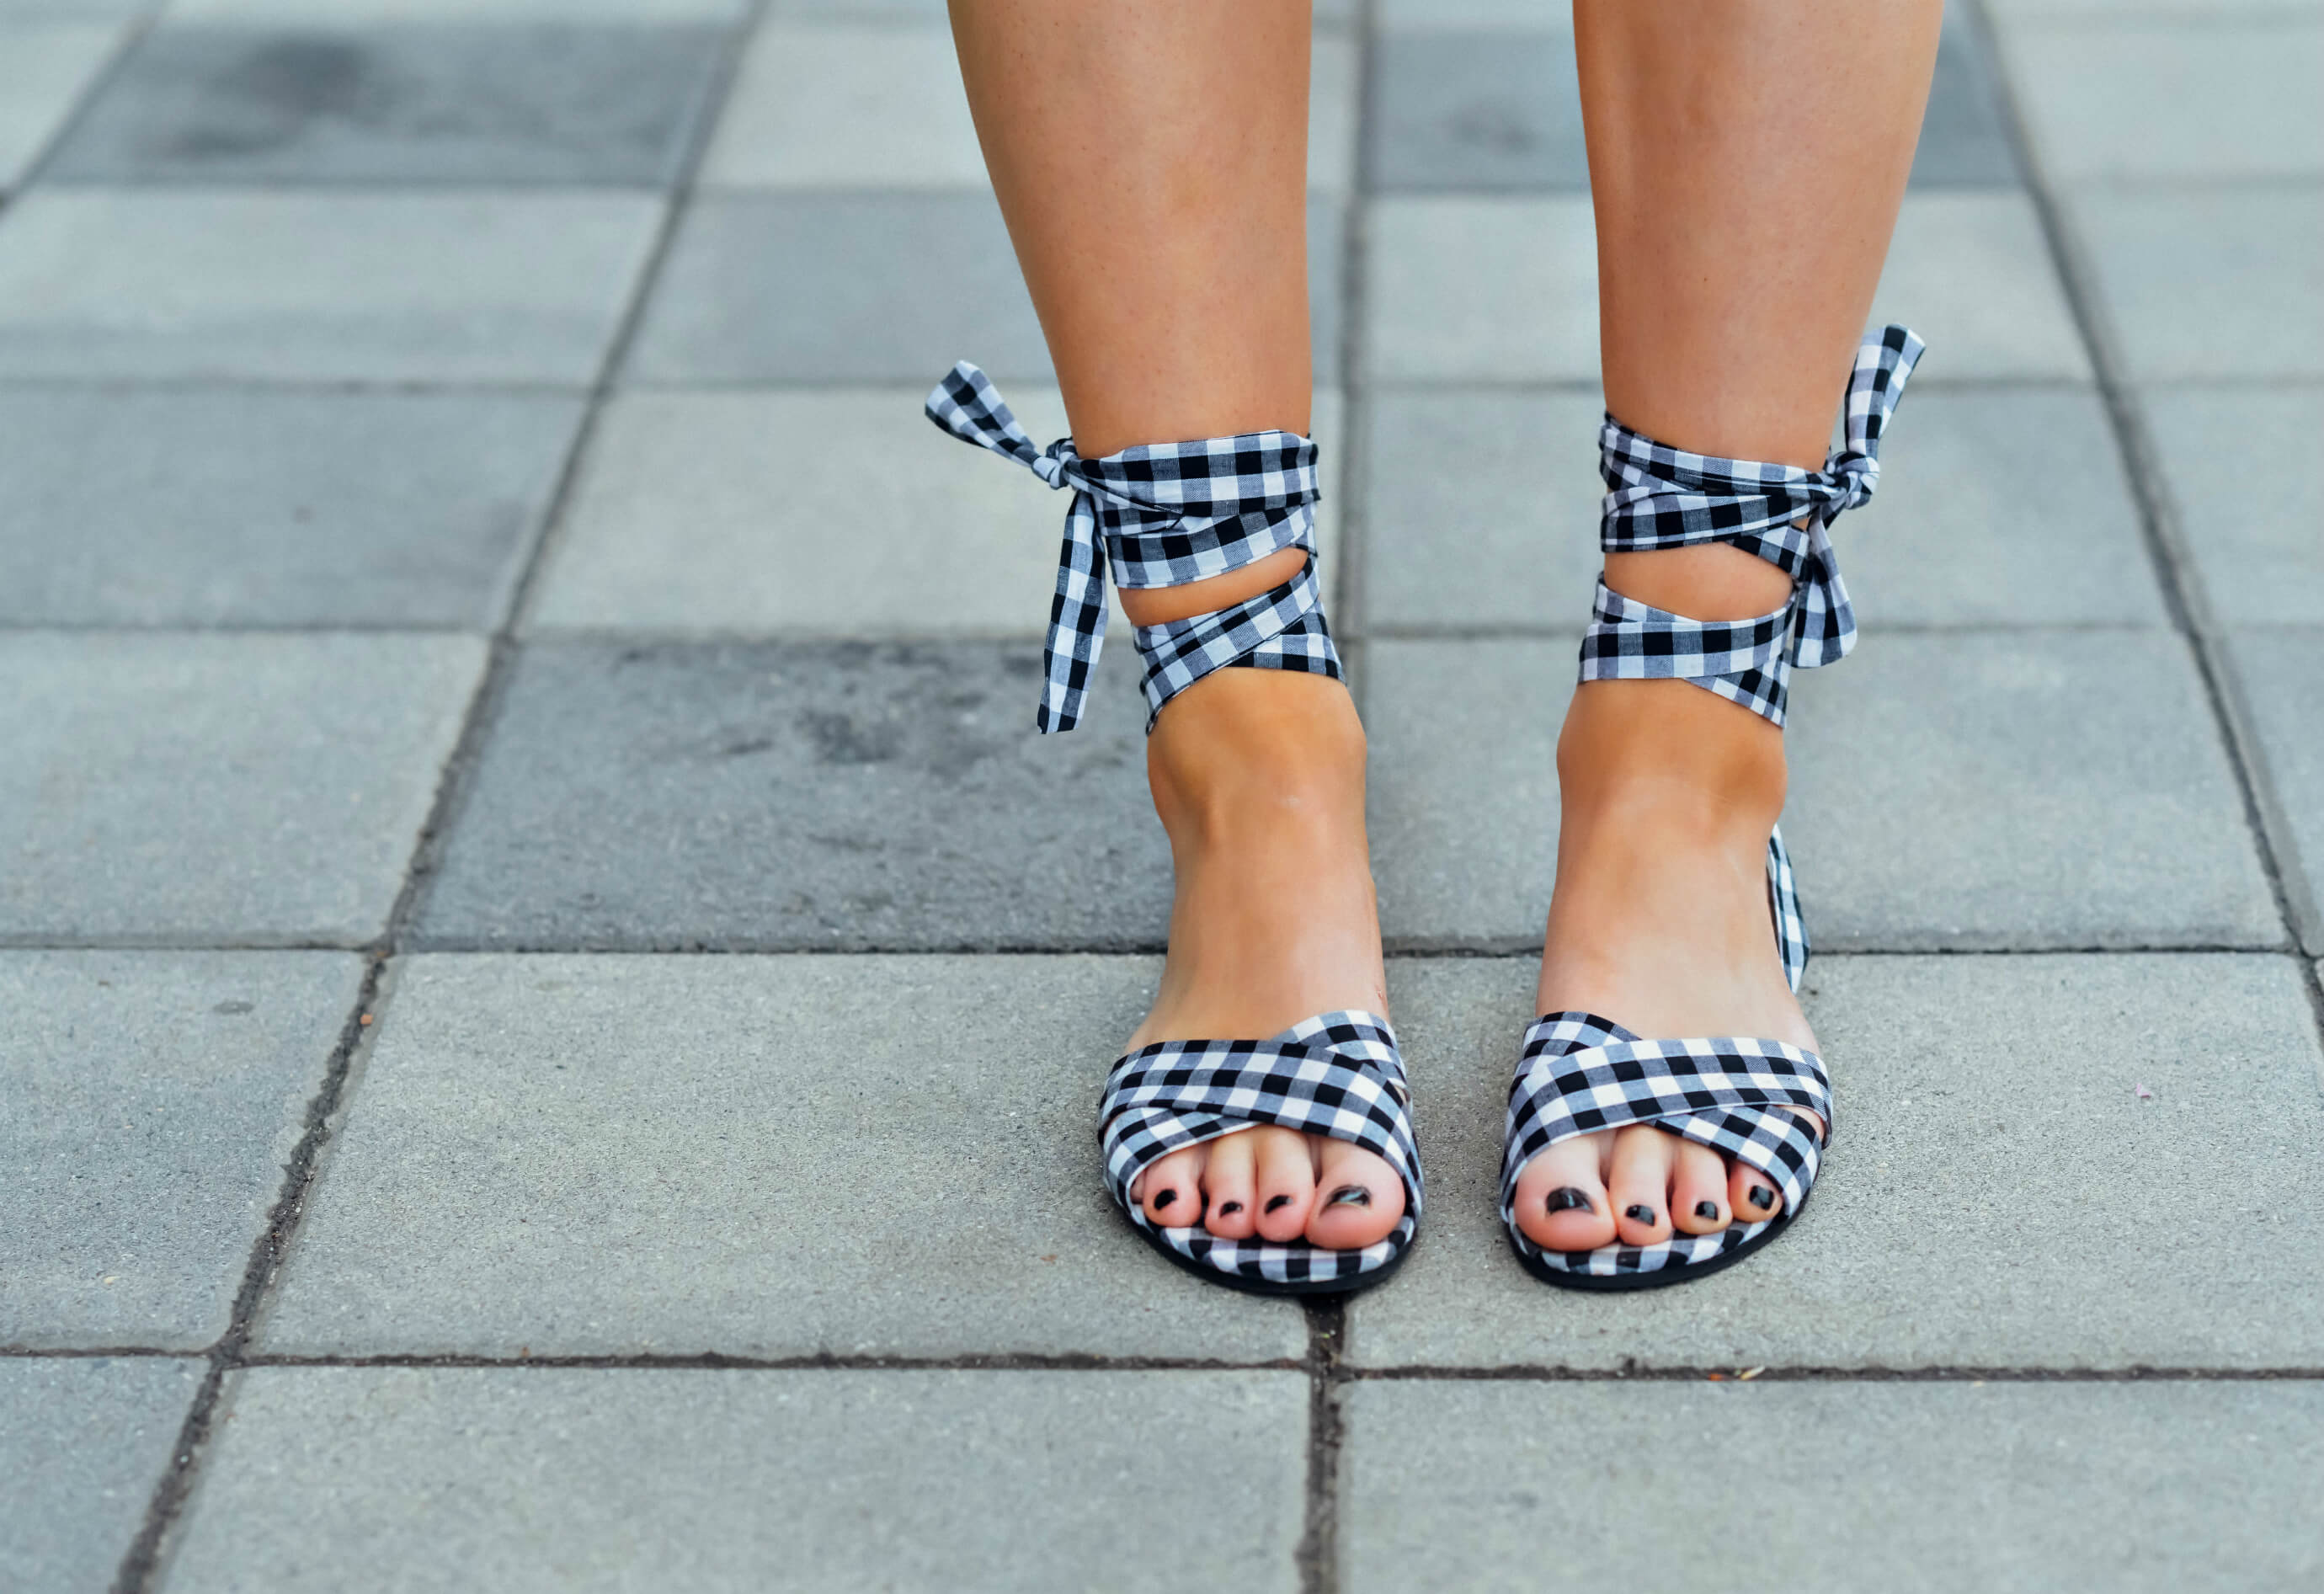 New Look ASOS Gingham Lace Up Sandals, Tilden of To Be Bright